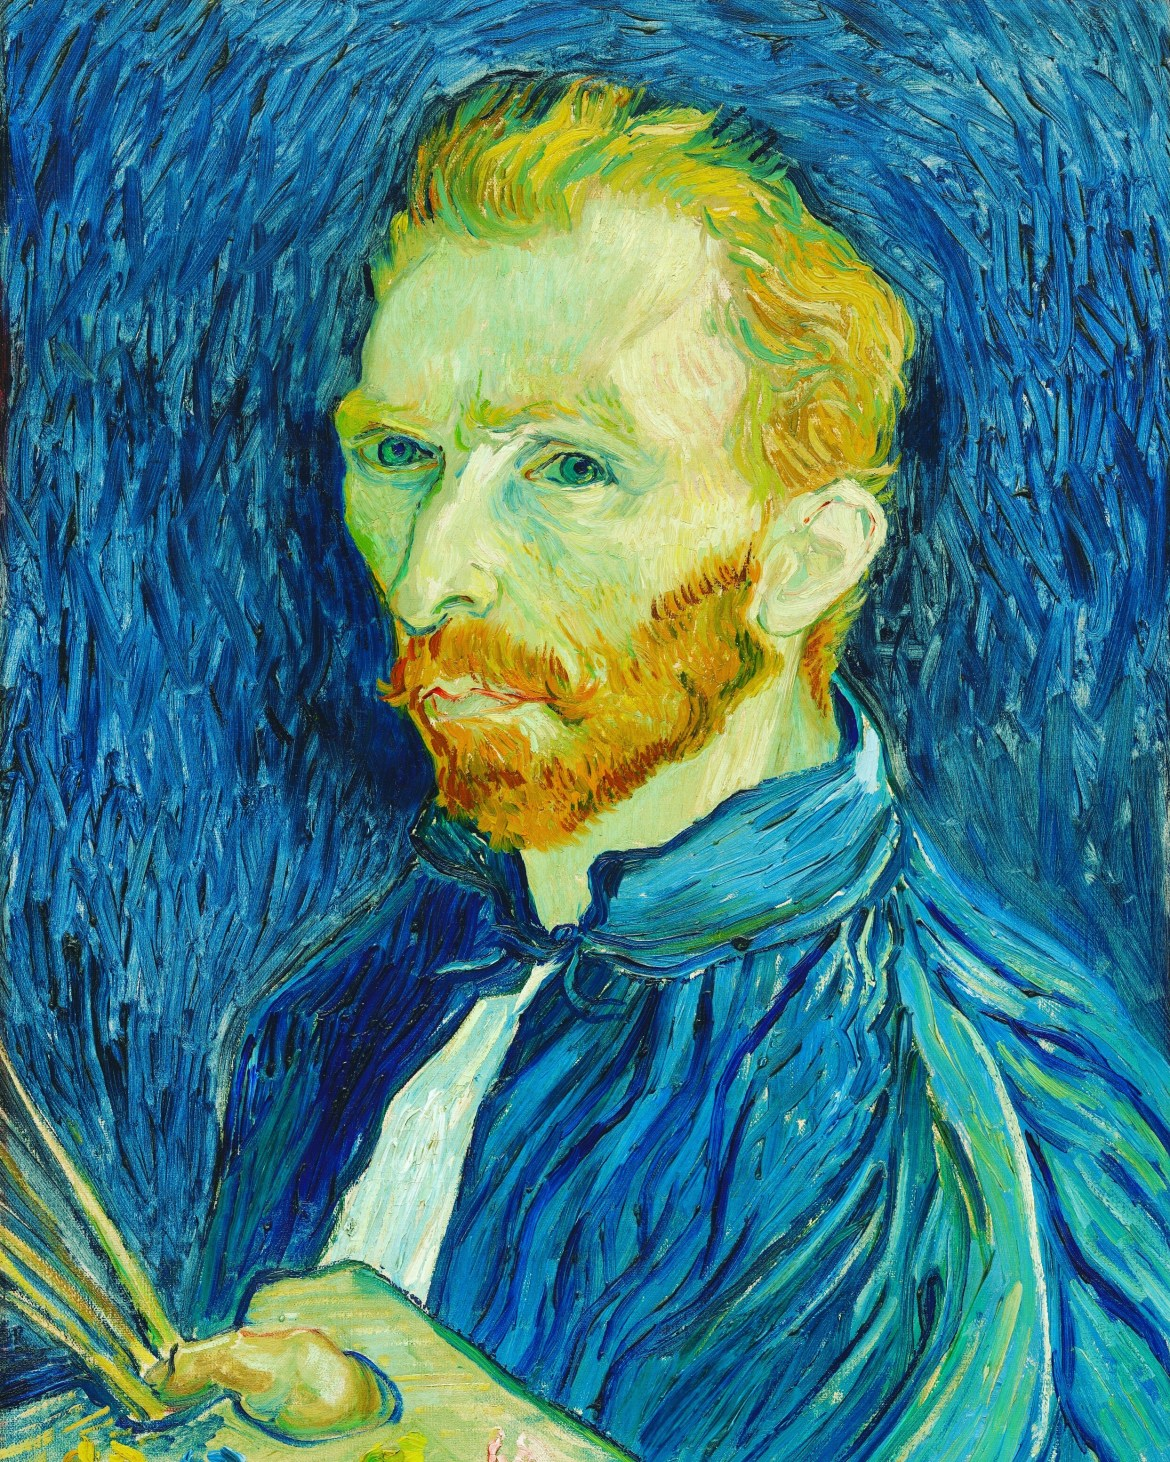 Vincent Van Gogh Self Portrait - 1889